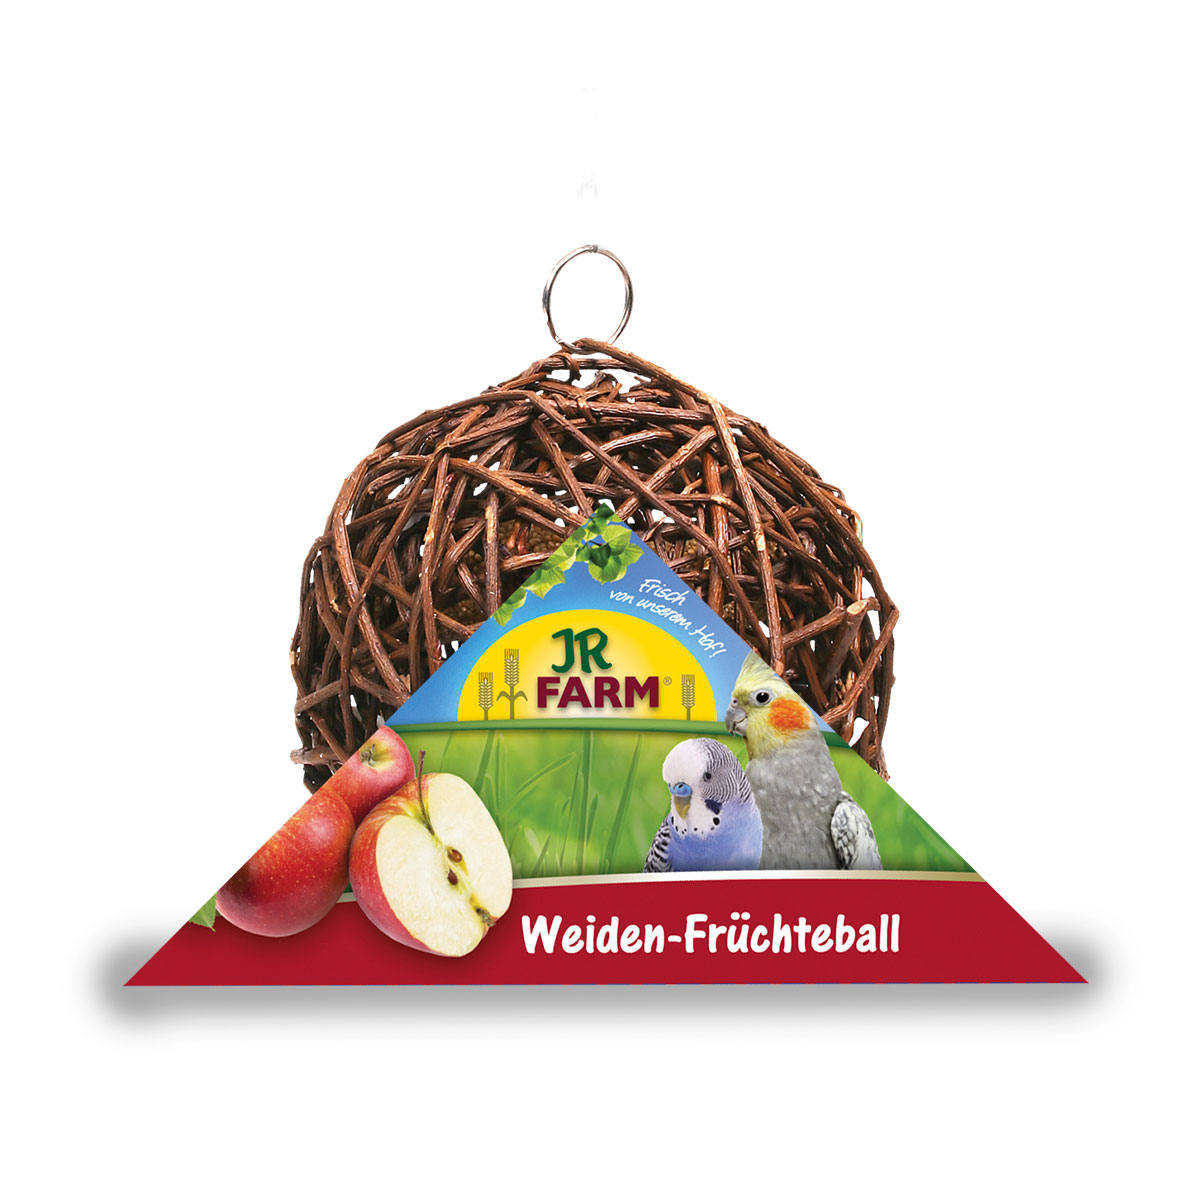 jr farm birds weiden fr chteball g nstig kaufen bei zooroyal. Black Bedroom Furniture Sets. Home Design Ideas